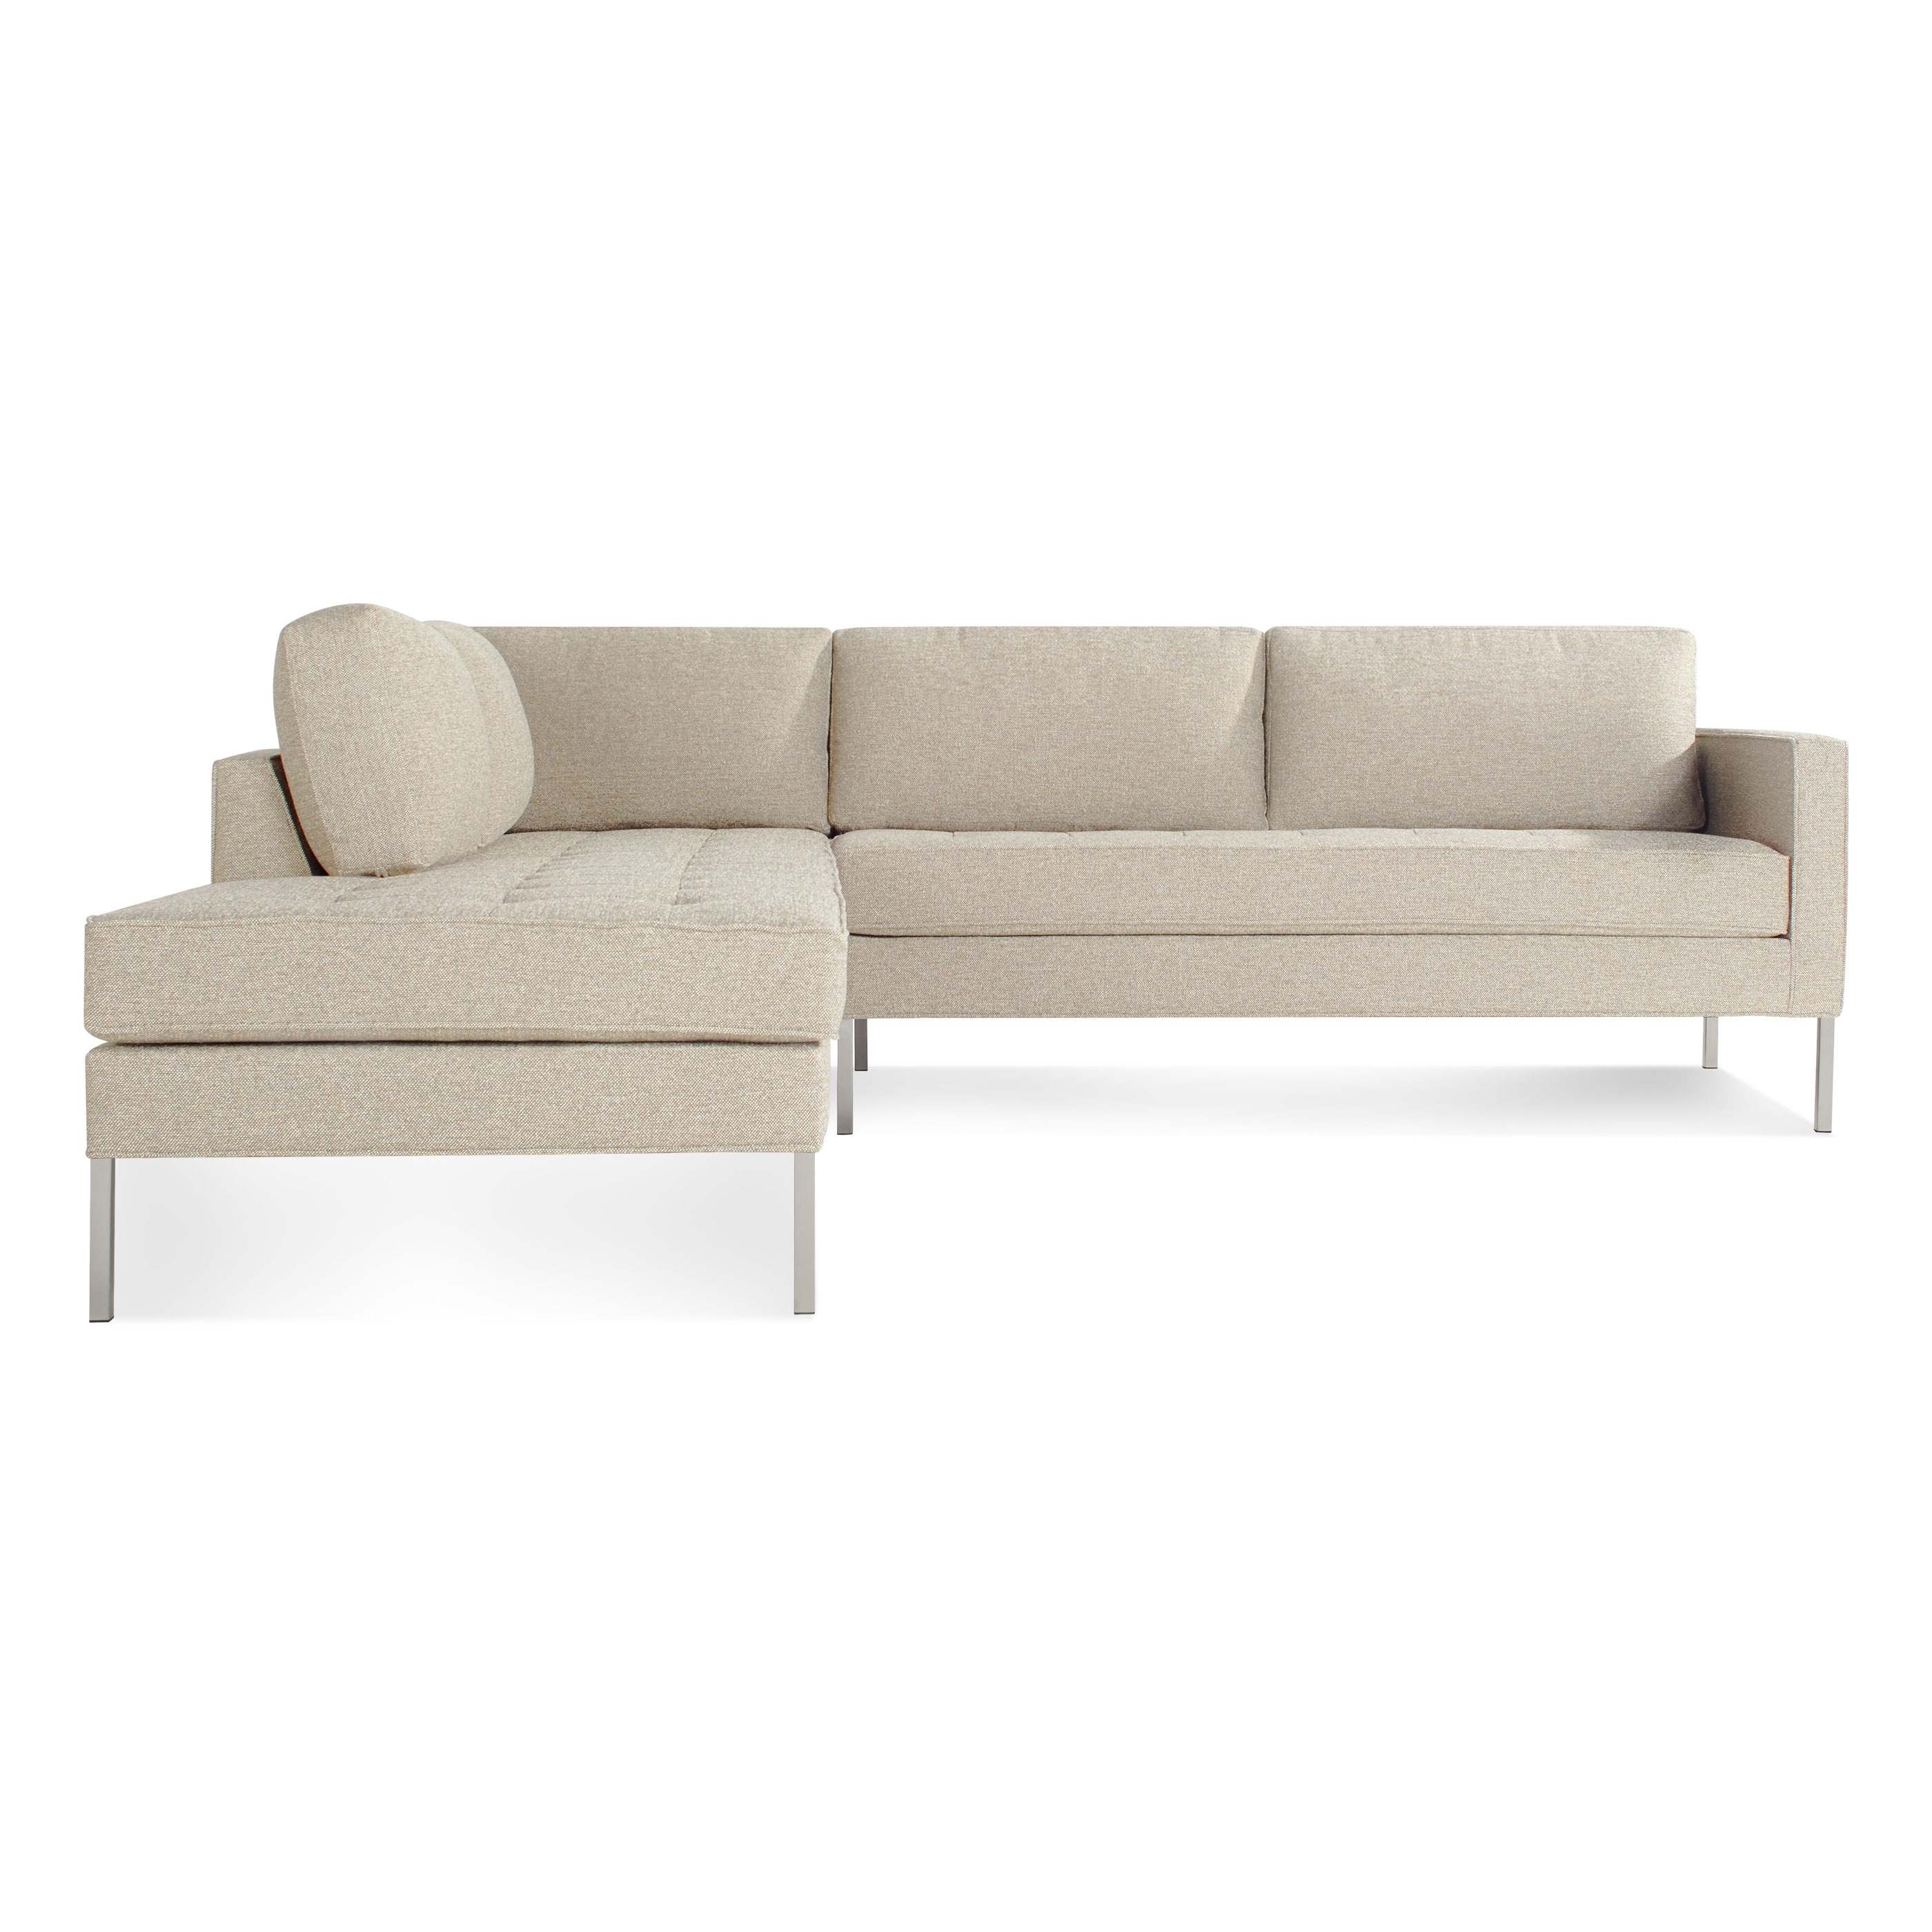 Paramount Left Sectional Sofa – Modern Designer Sofas | Blu Dot Within Newfoundland Sectional Sofas (View 7 of 10)